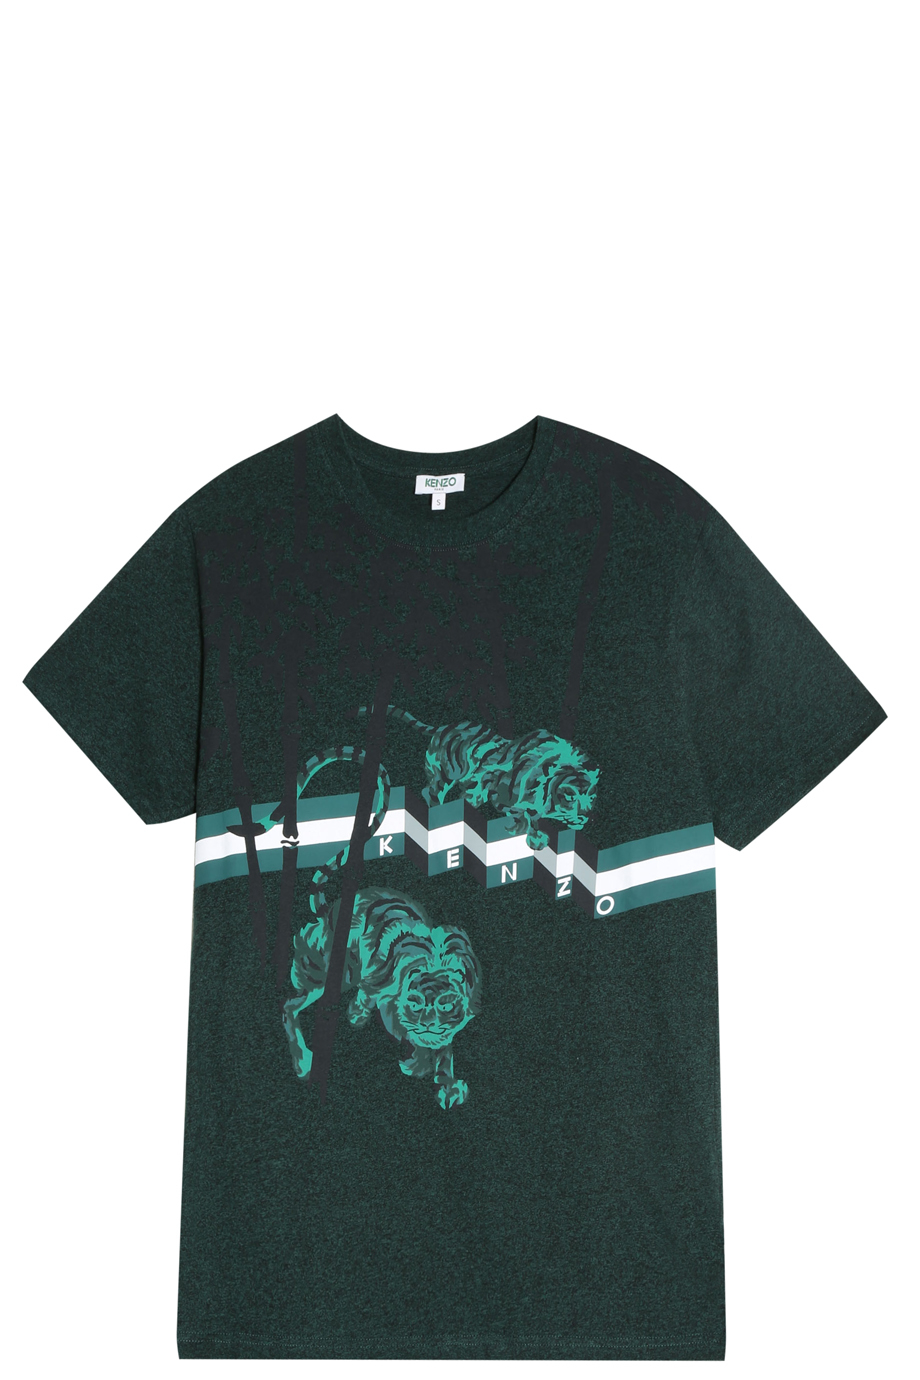 Kenzo Bamboo Tiger T Shirt In Green For Men Lyst